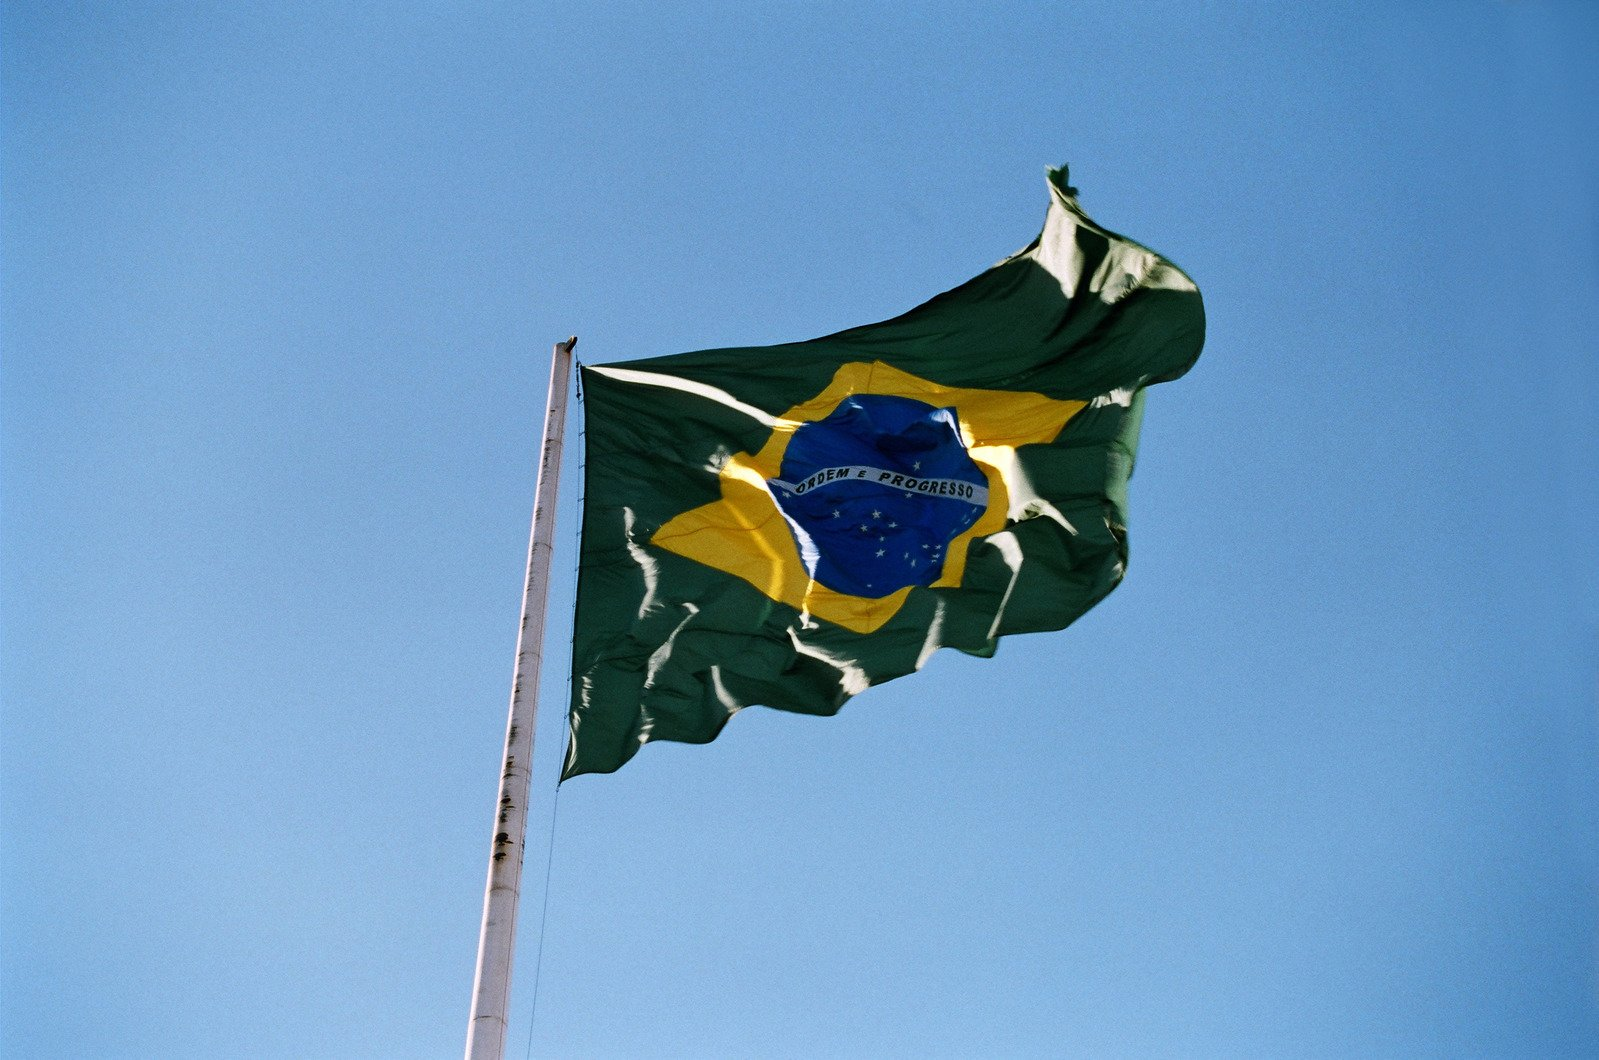 Tax regulations in Brazil forcing multiple crypto exchanges to shut down